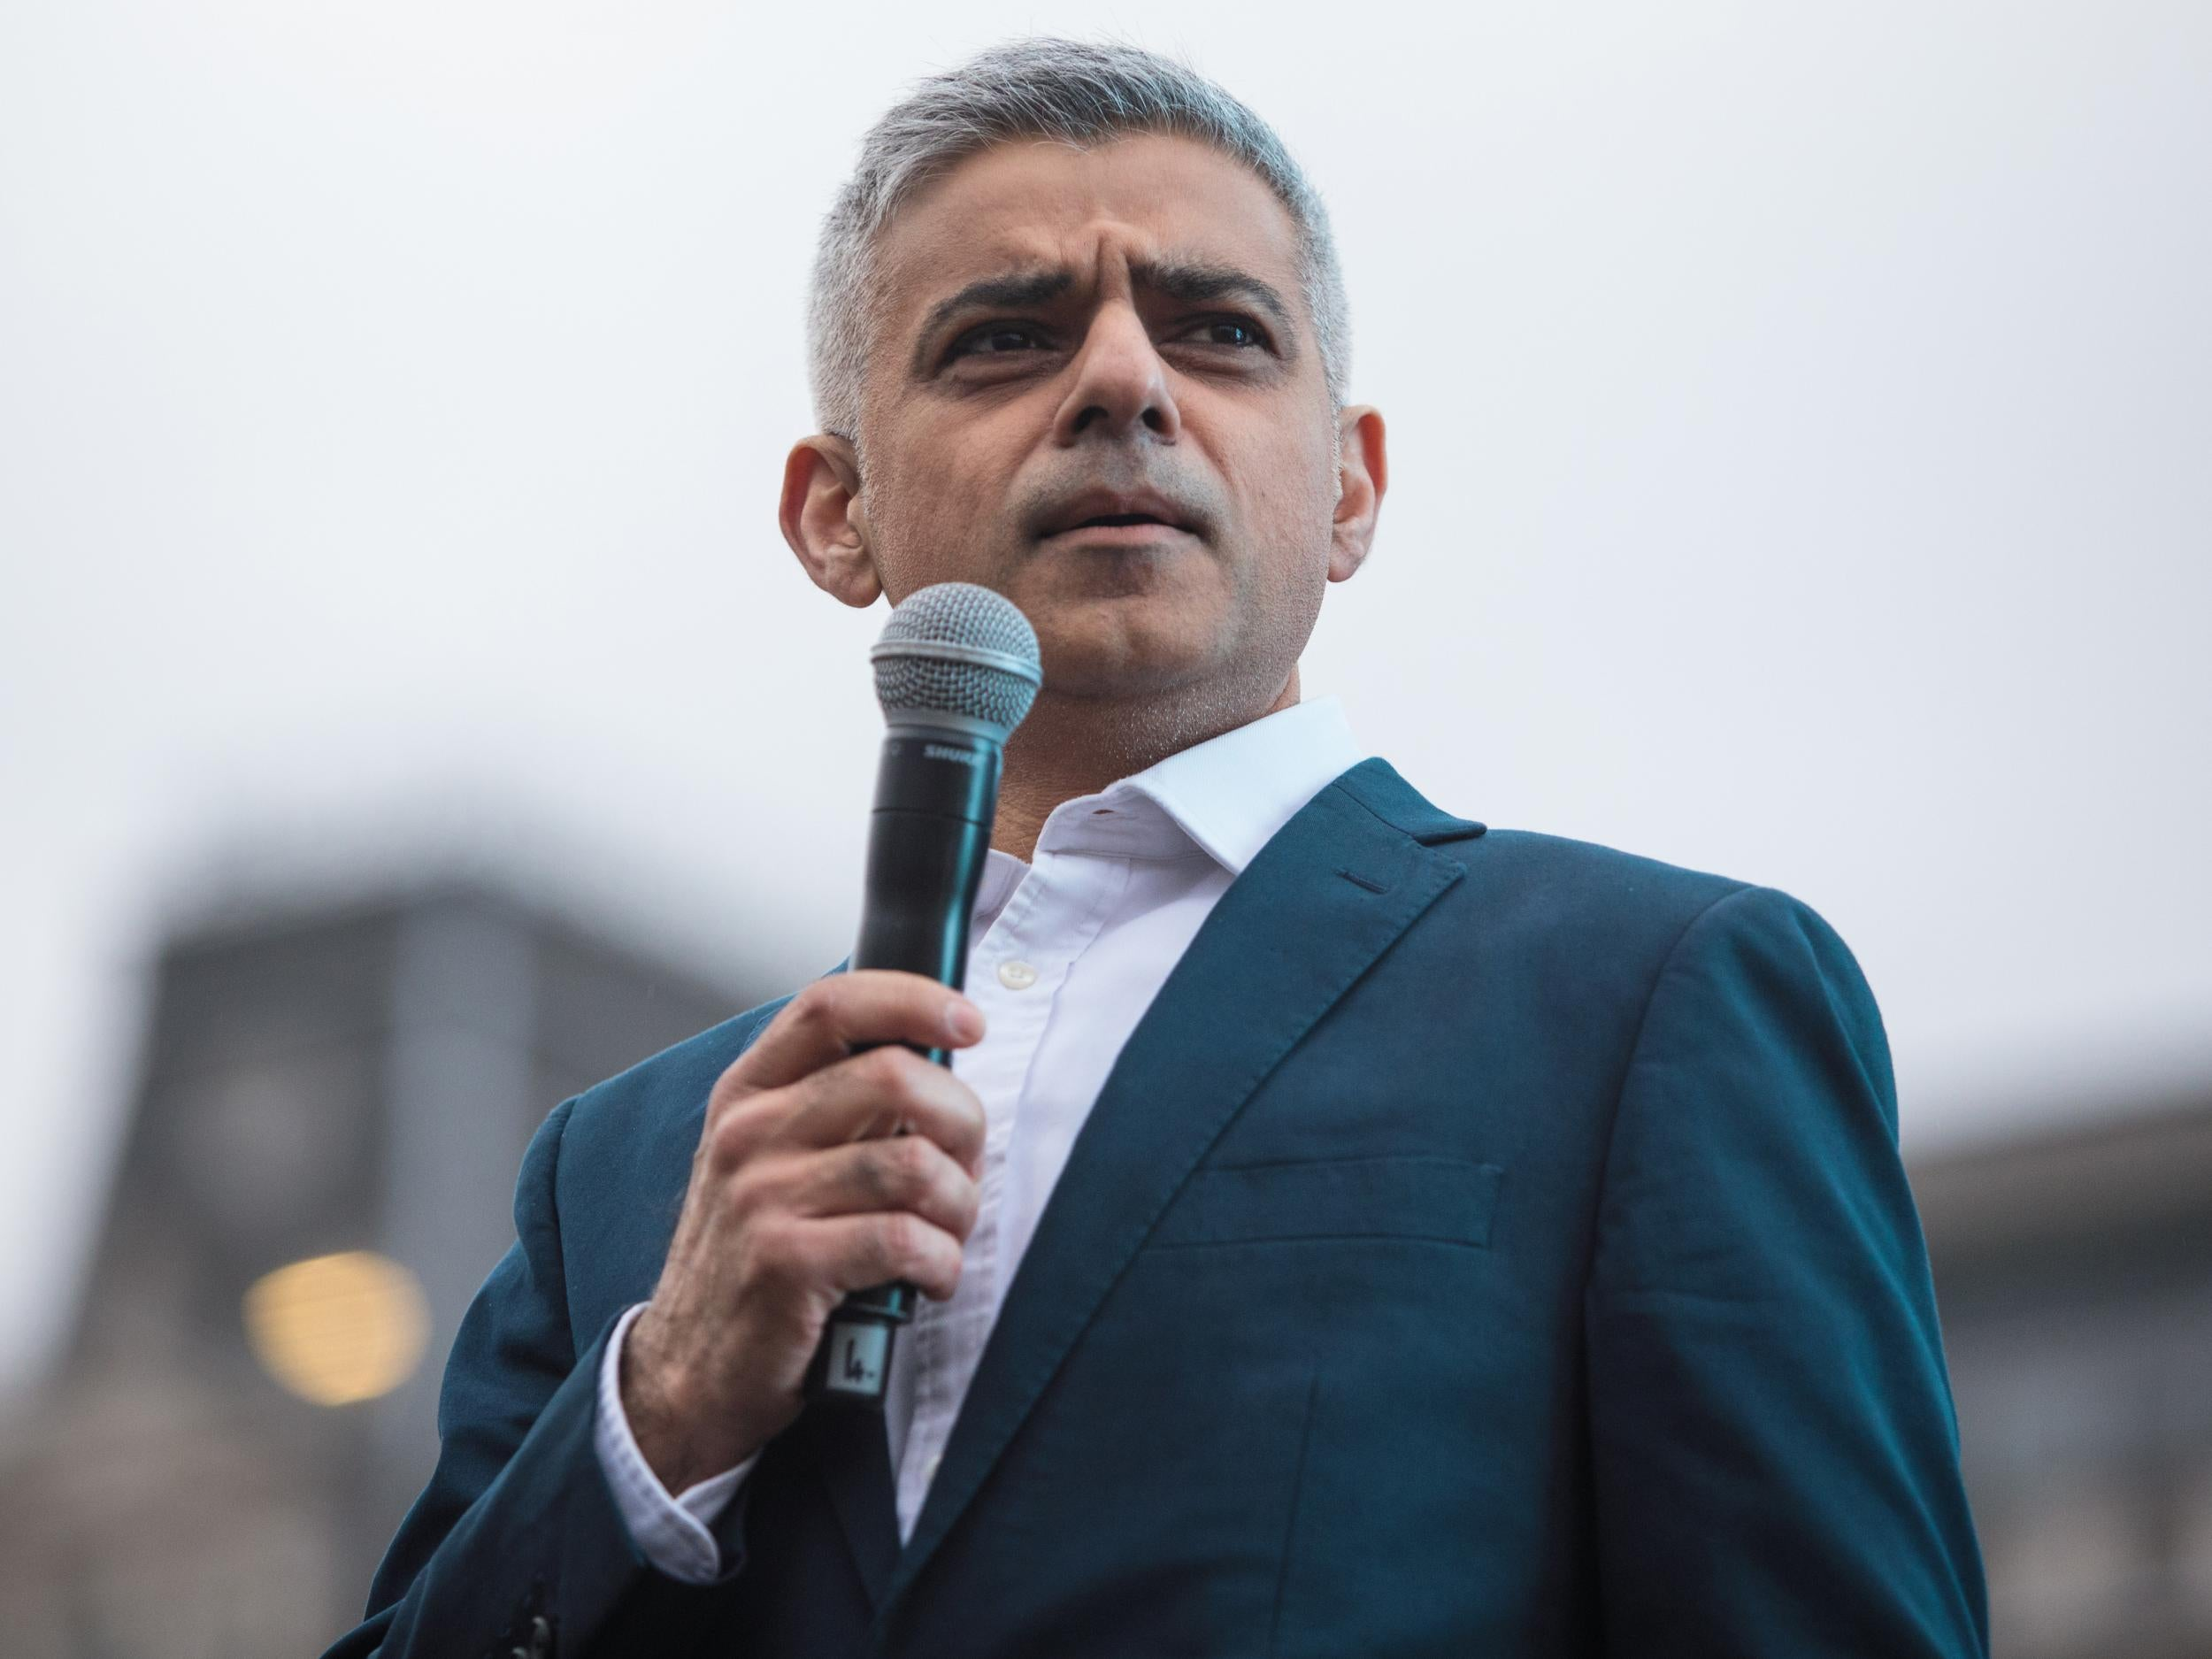 Sadiq Khan accuses Government of being 'weak on causes of crime' amid rising violence